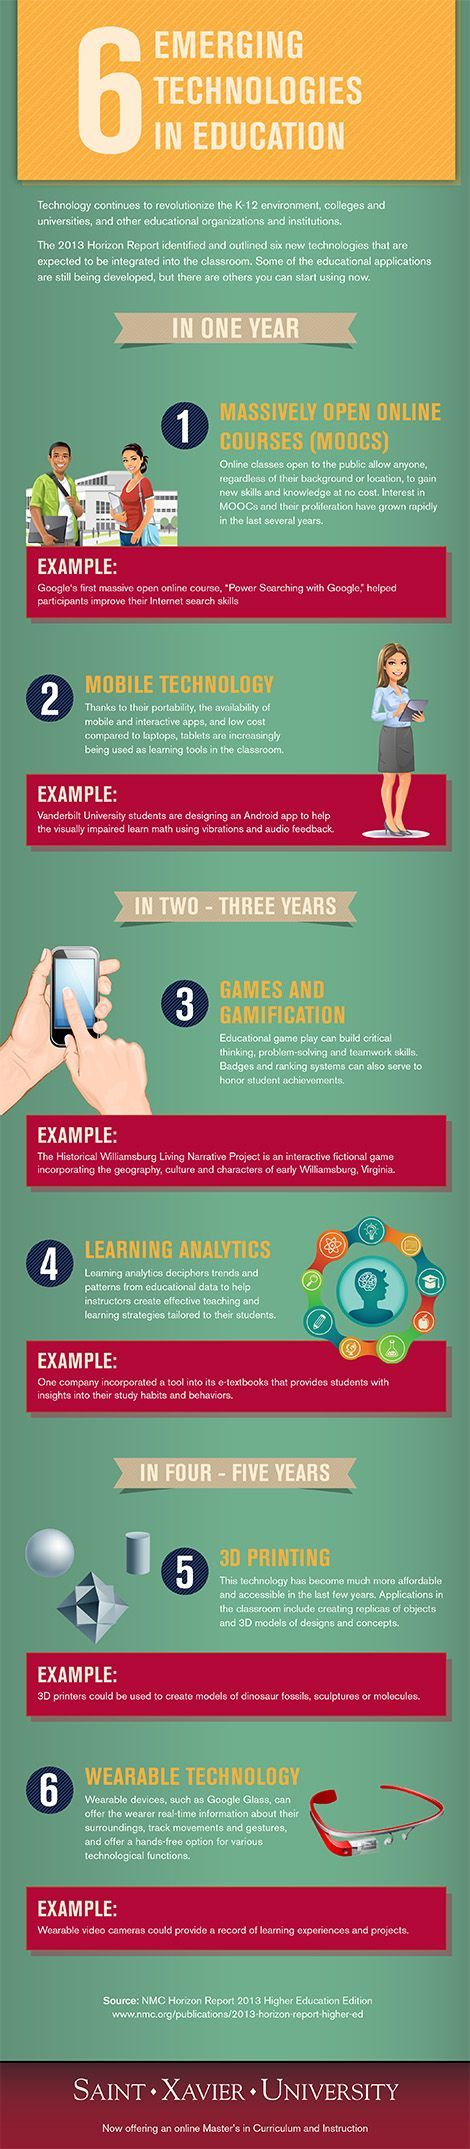 6 Emerging Education Technologies Infographic